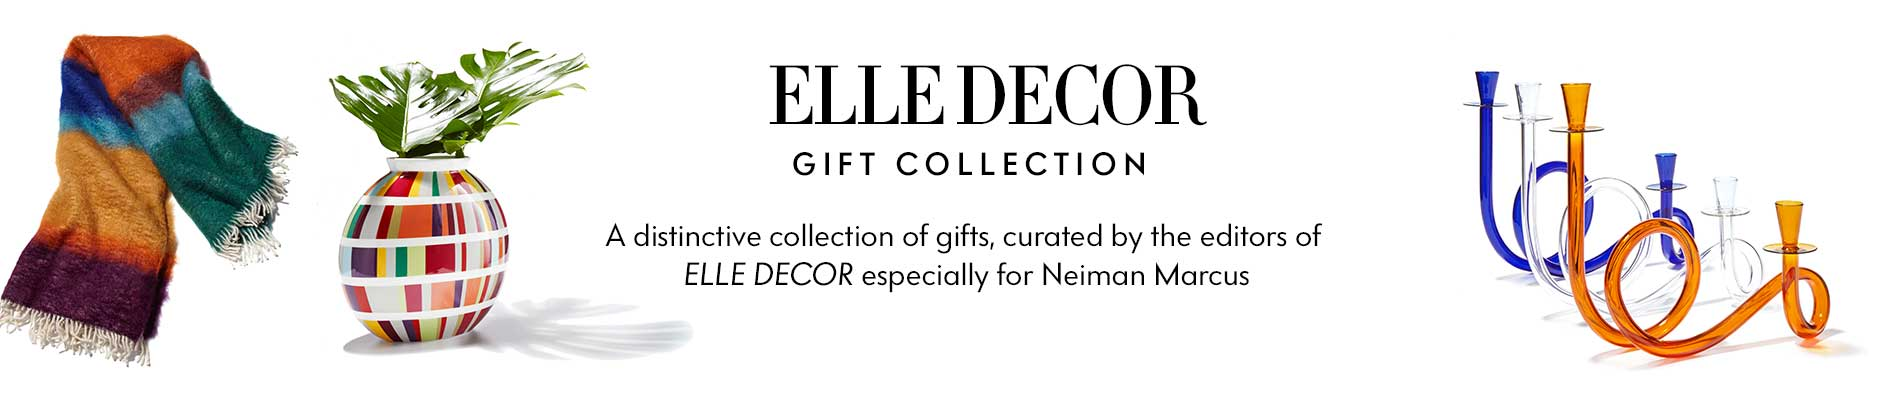 Elle Decor Gift Collection - A distinctive collection of gifts, curated by the editors of Elle Decor especially for Neiman Marcus